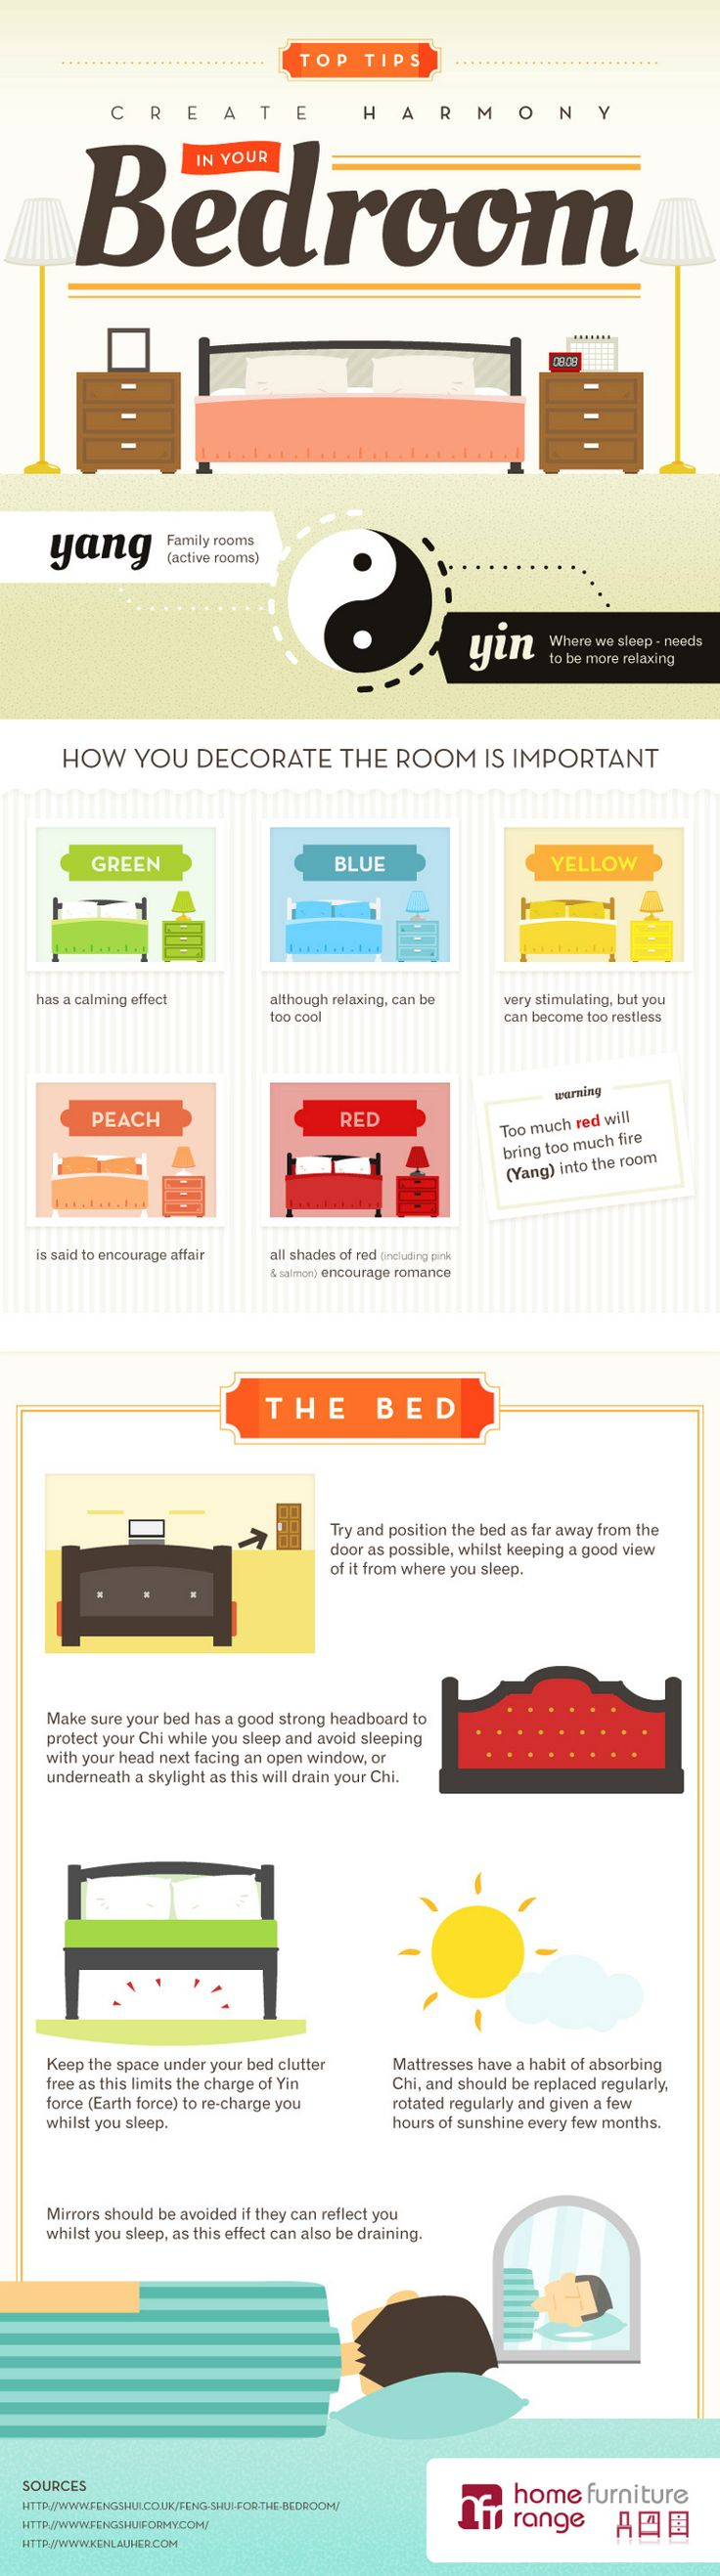 How to Decorate a Small Bedroom - LandlordStation.com